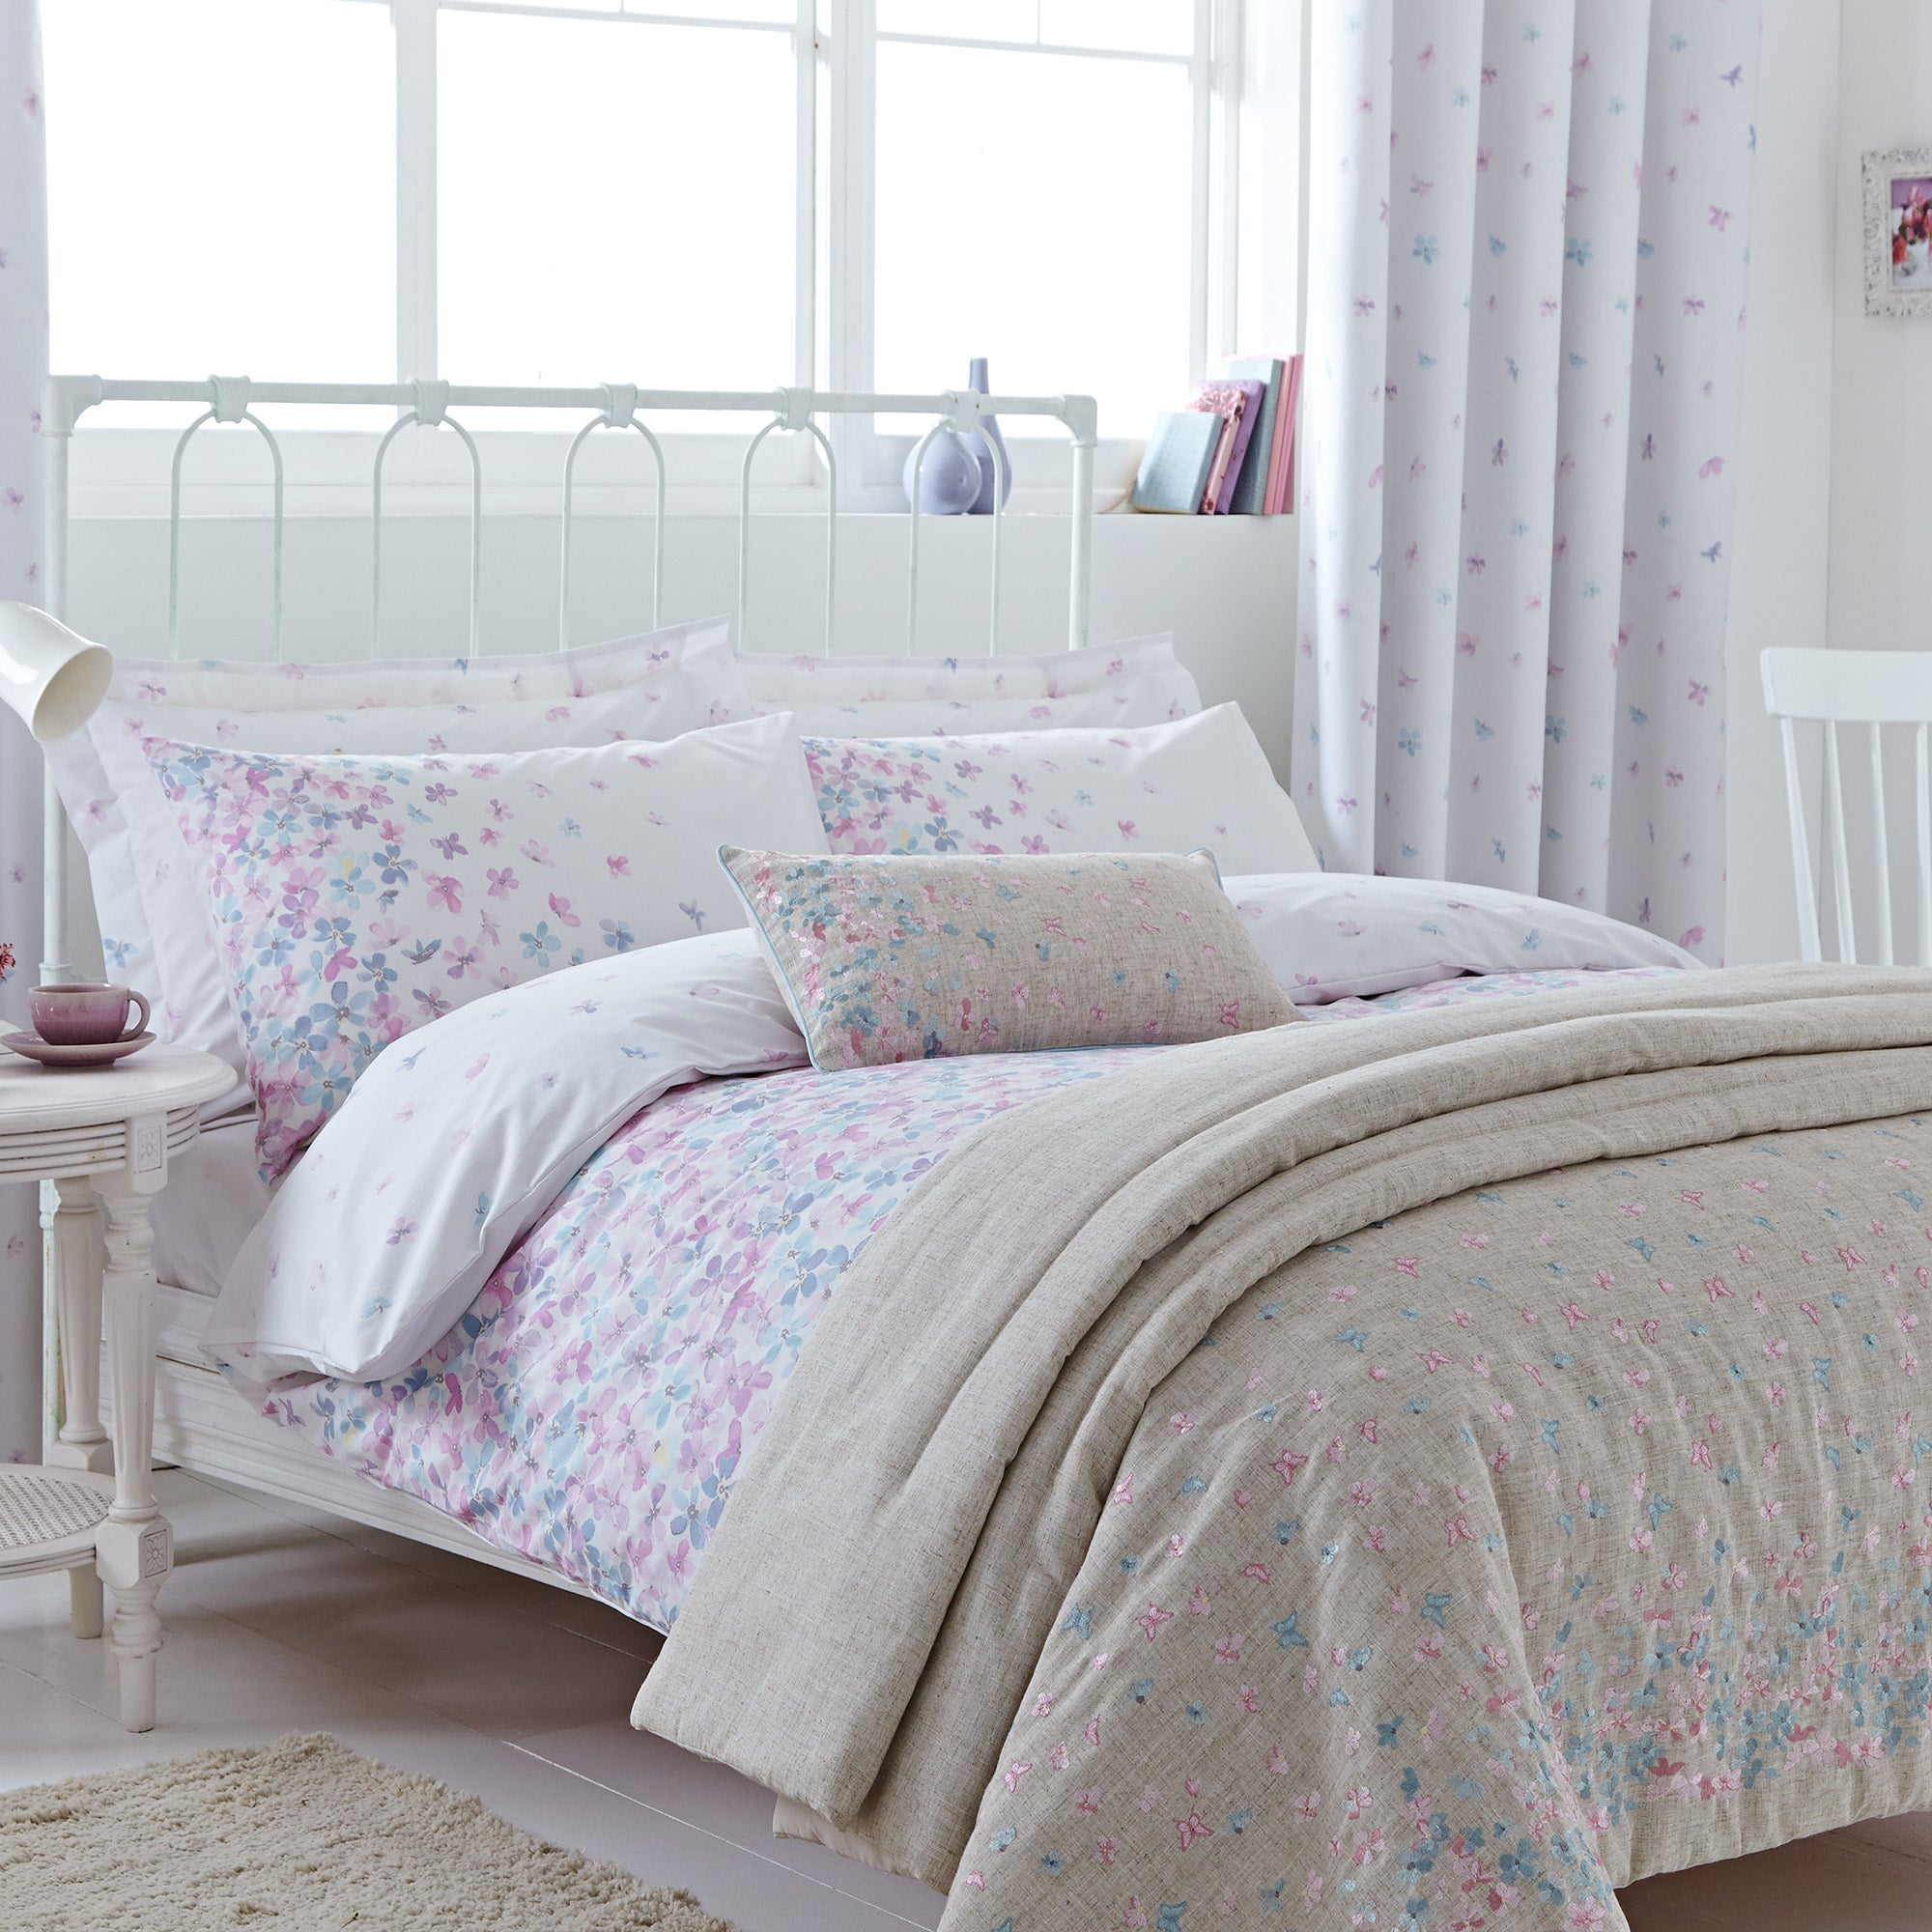 Emilia Natural Bed Linen Collection